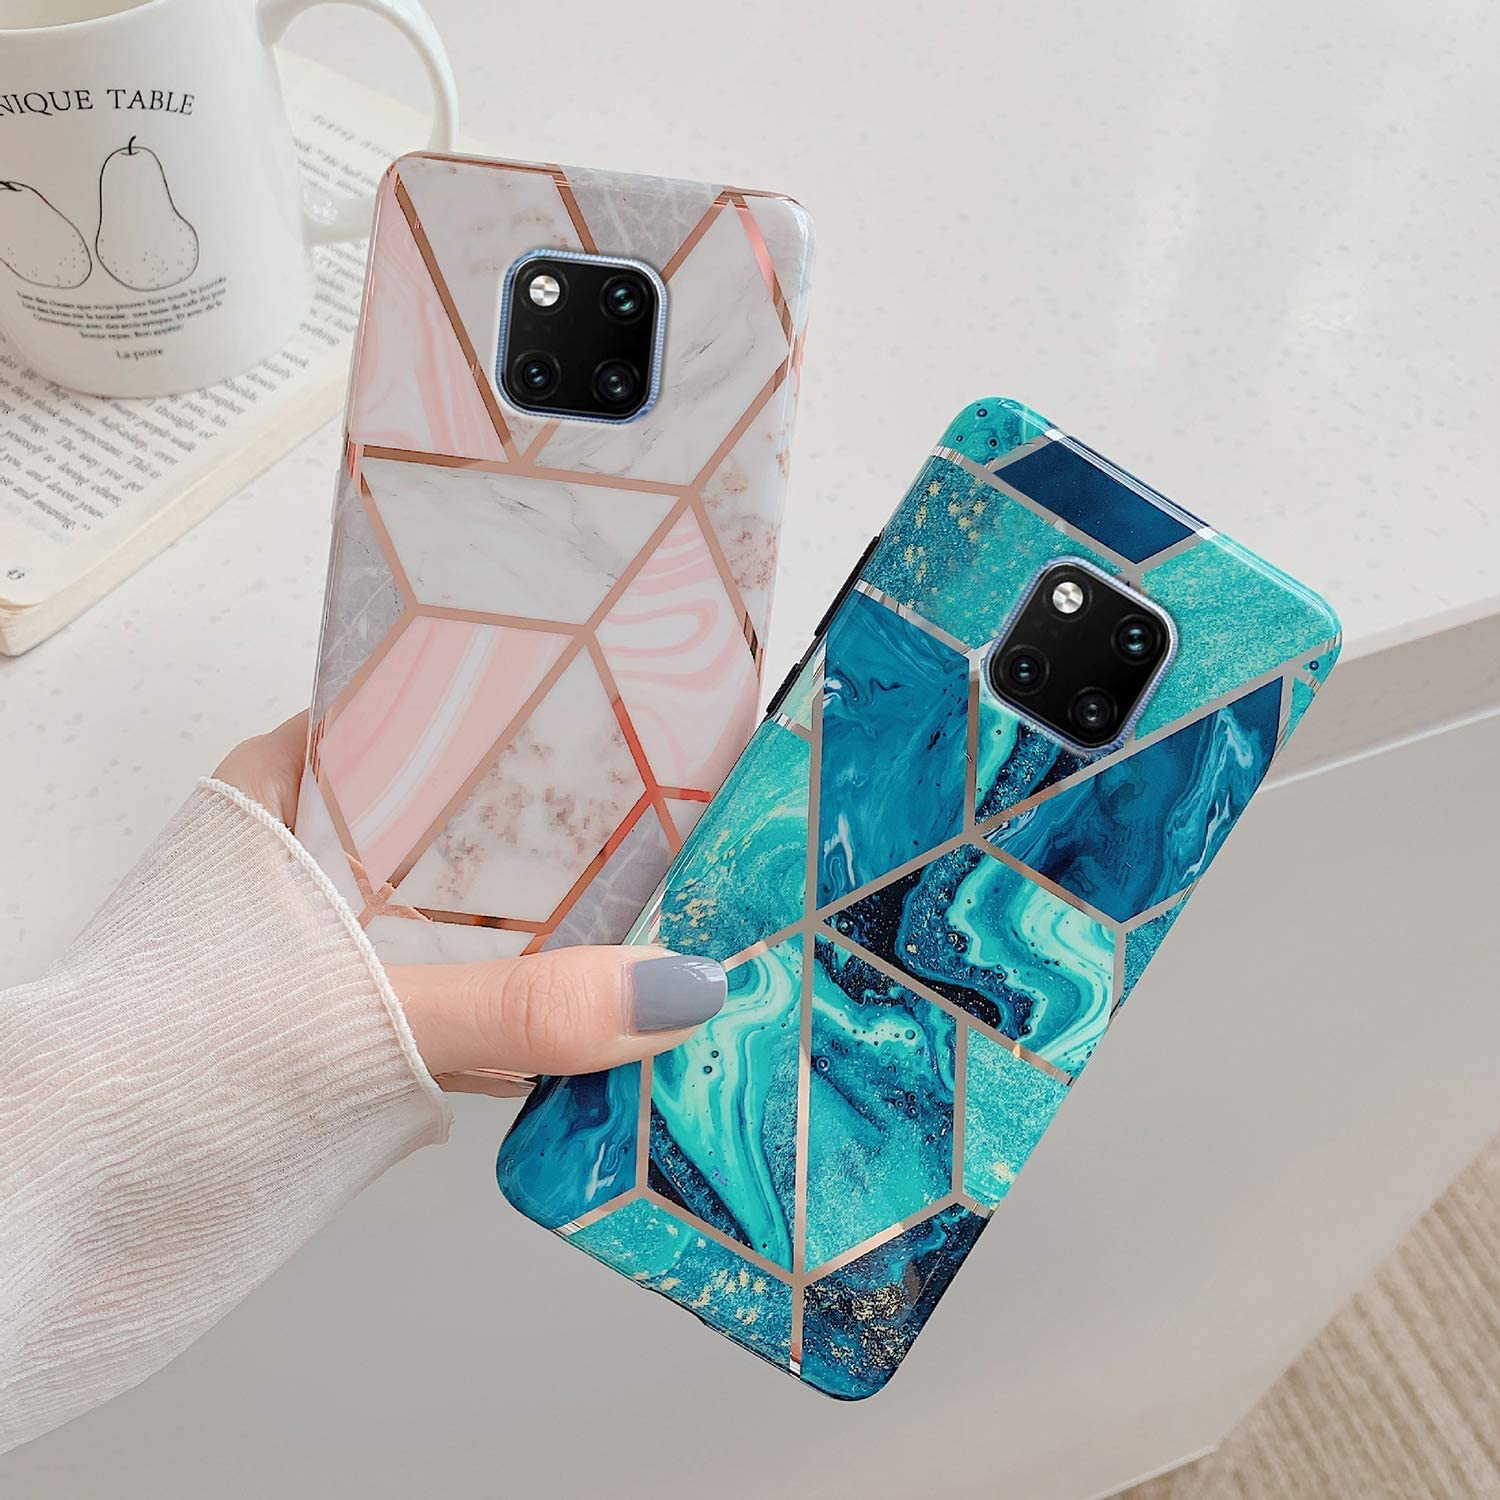 Herbests Compatible with Huawei Mate 20 Pro Marble Case Designed Girls Women Glitter Case Ultra-Thin Shock Absorption Slim Case Soft Silicone Cover Protective Bumper,Green